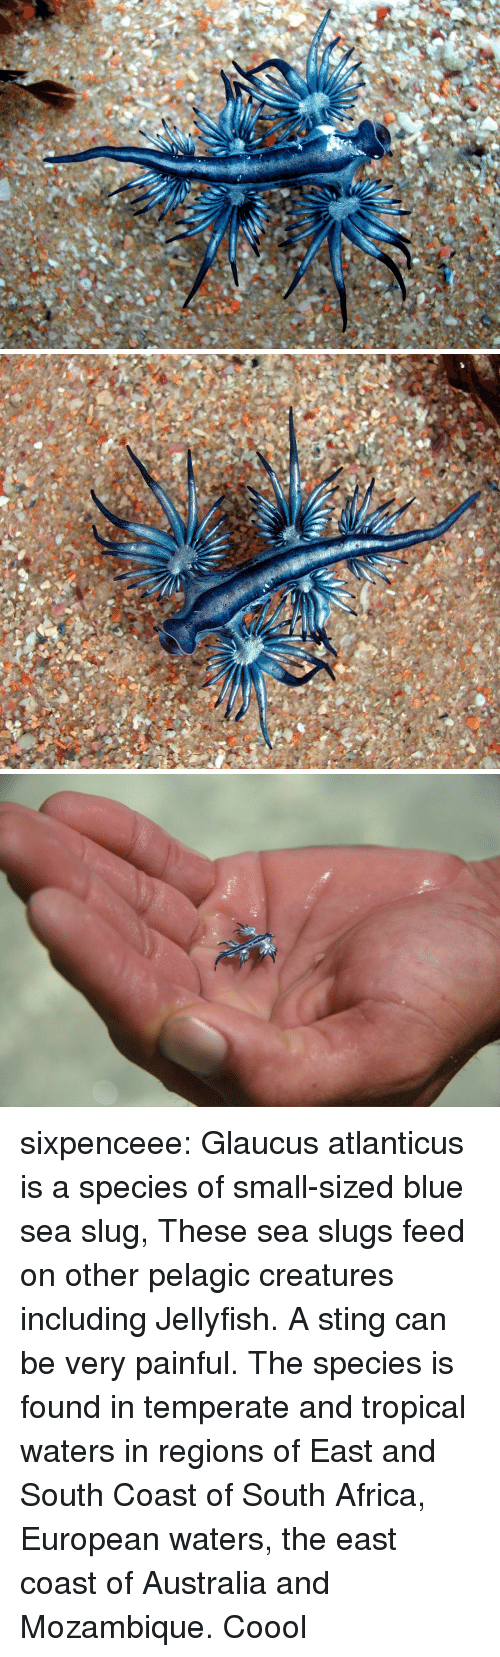 Africa, Target, and Tumblr: sixpenceee:  Glaucus atlanticus is a species of small-sized blue sea slug, These sea slugs feed on other pelagic creatures including Jellyfish. A sting can be very painful. The species is found in temperate and tropical waters in regions of East and South Coast of South Africa, European waters, the east coast of Australia and Mozambique.   Coool